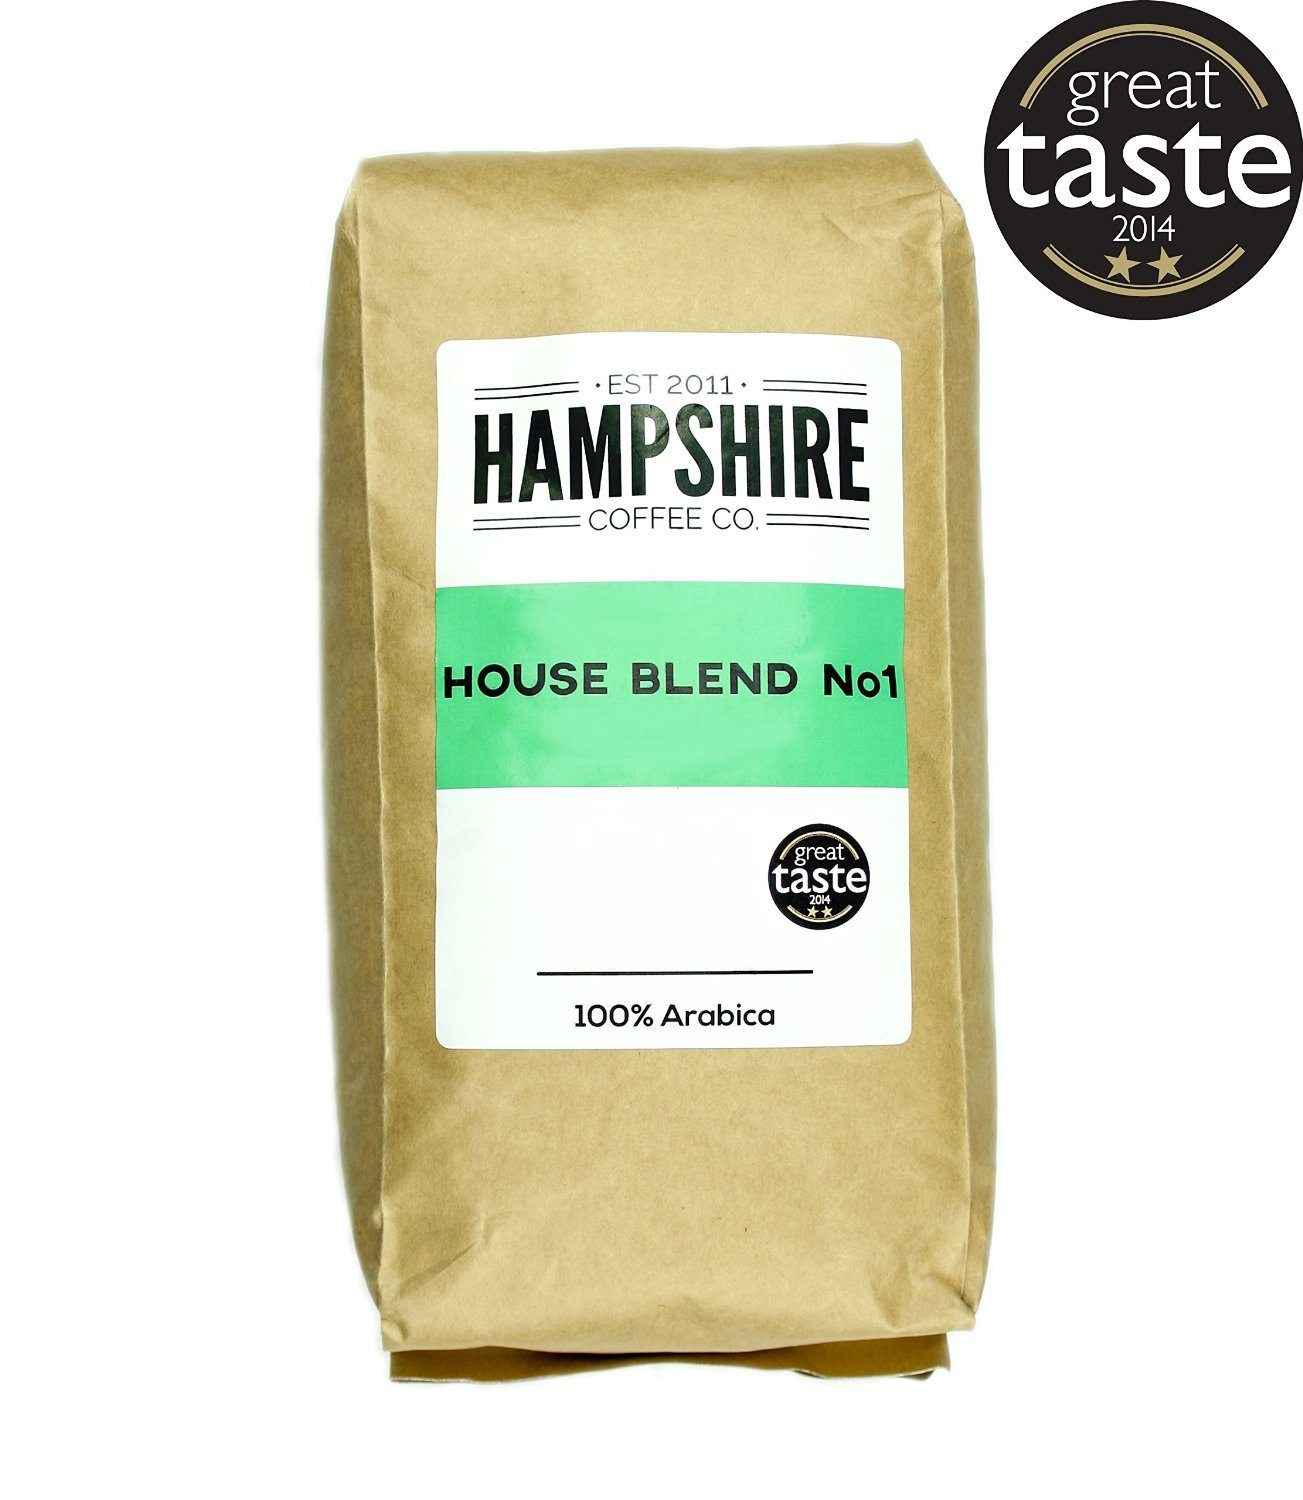 Hampshire Coffee Co - House Blend No 1- Great Taste Award Winner